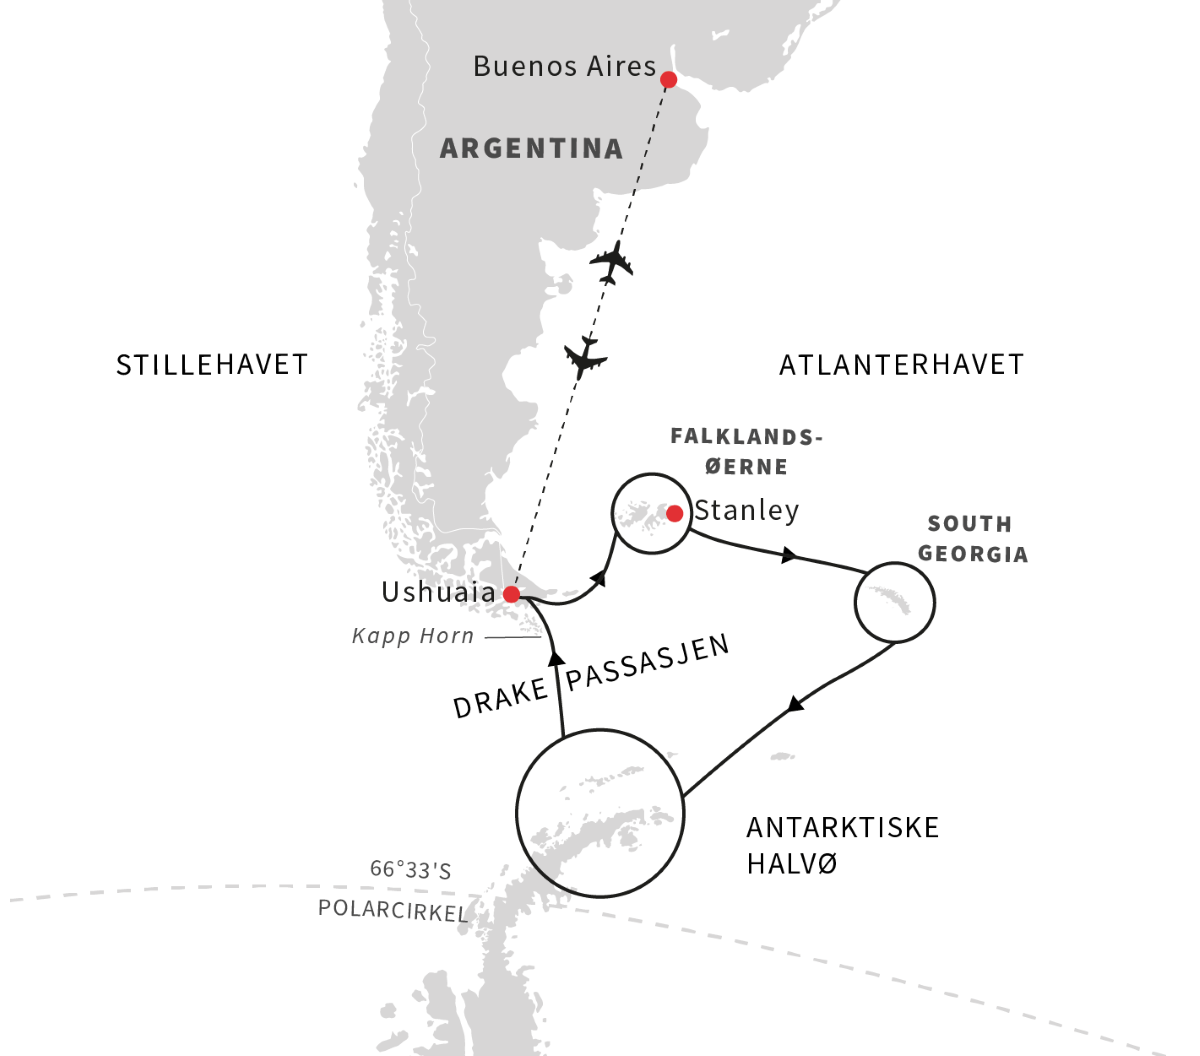 Antarktis, Falklandsøerne, South Georgia